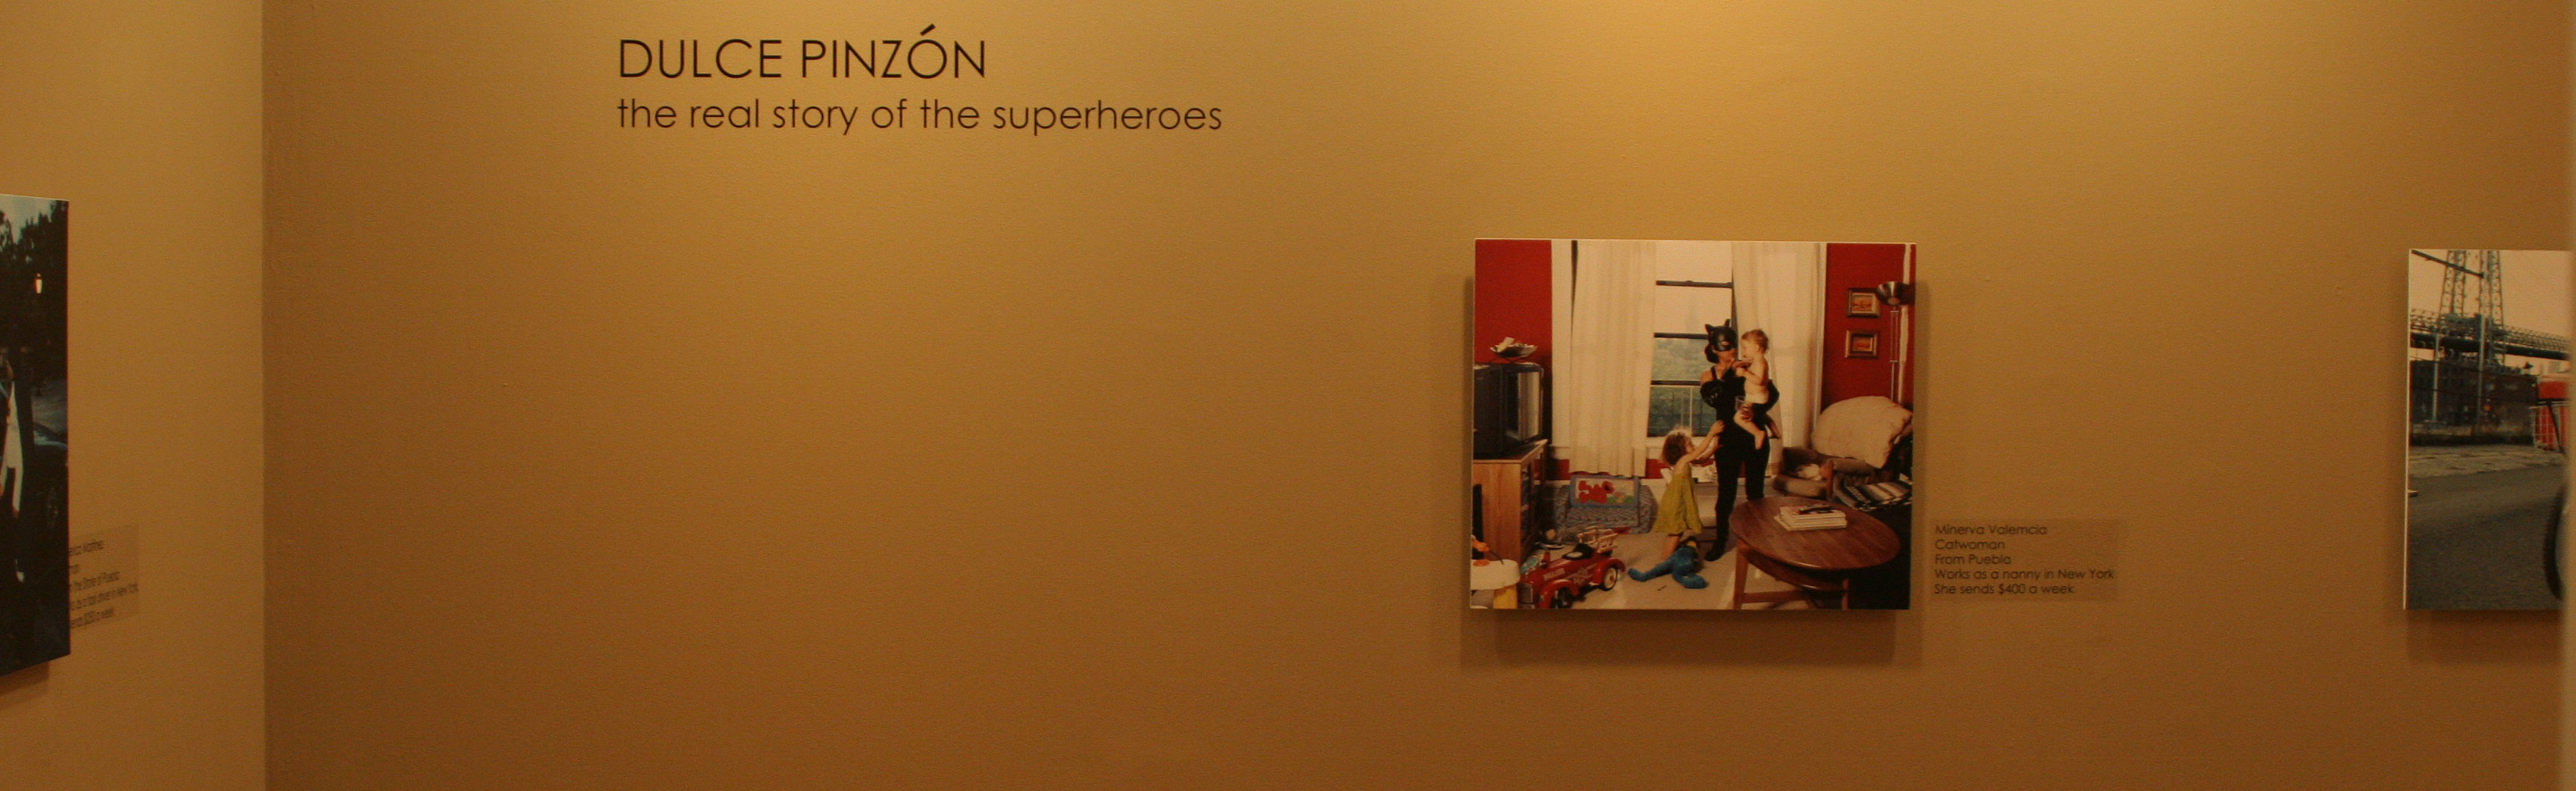 "Dulce Pinzón ""The Real Story of the Superheroes"""